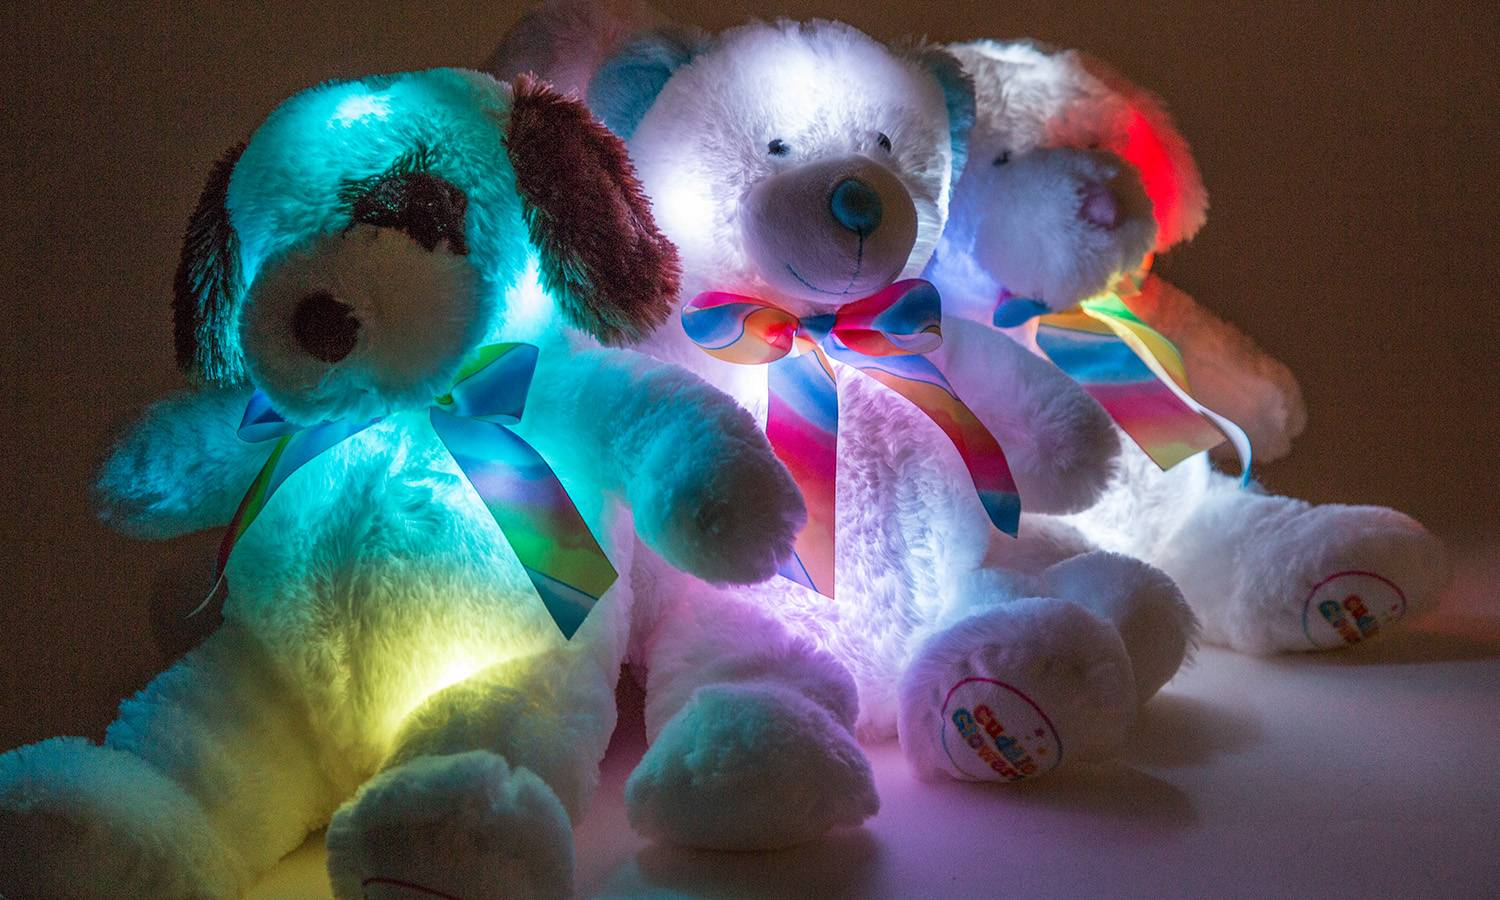 Groupon Goods Two Glowing Puppy Cuddly Toys - Assorted